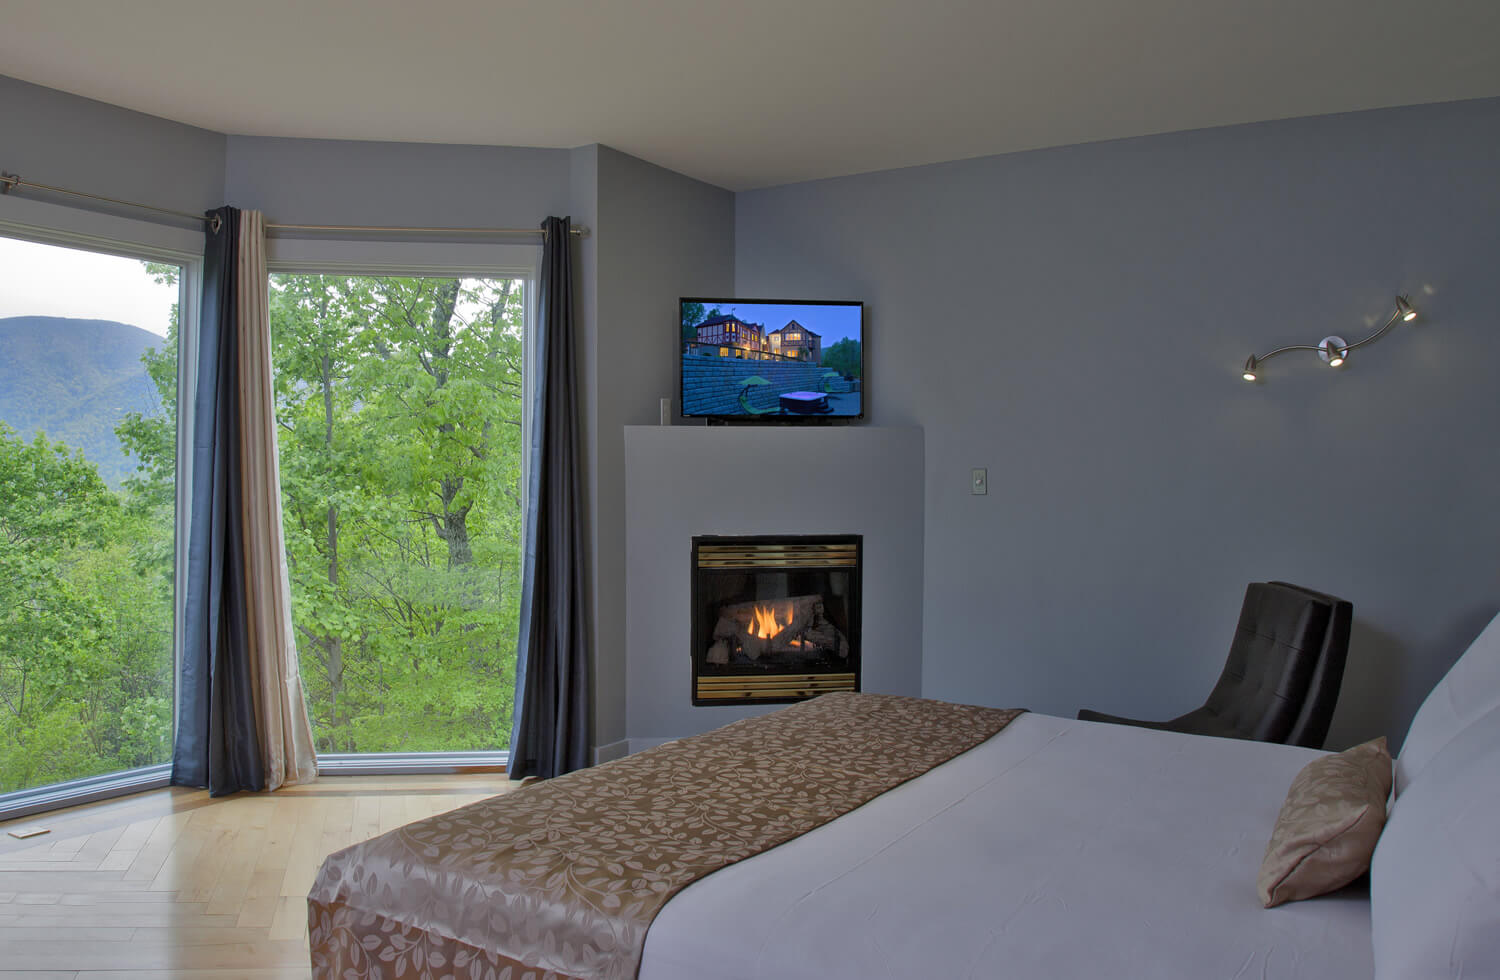 A white bed with gold accents and throw rests across from a fireplace and open window with mountain view